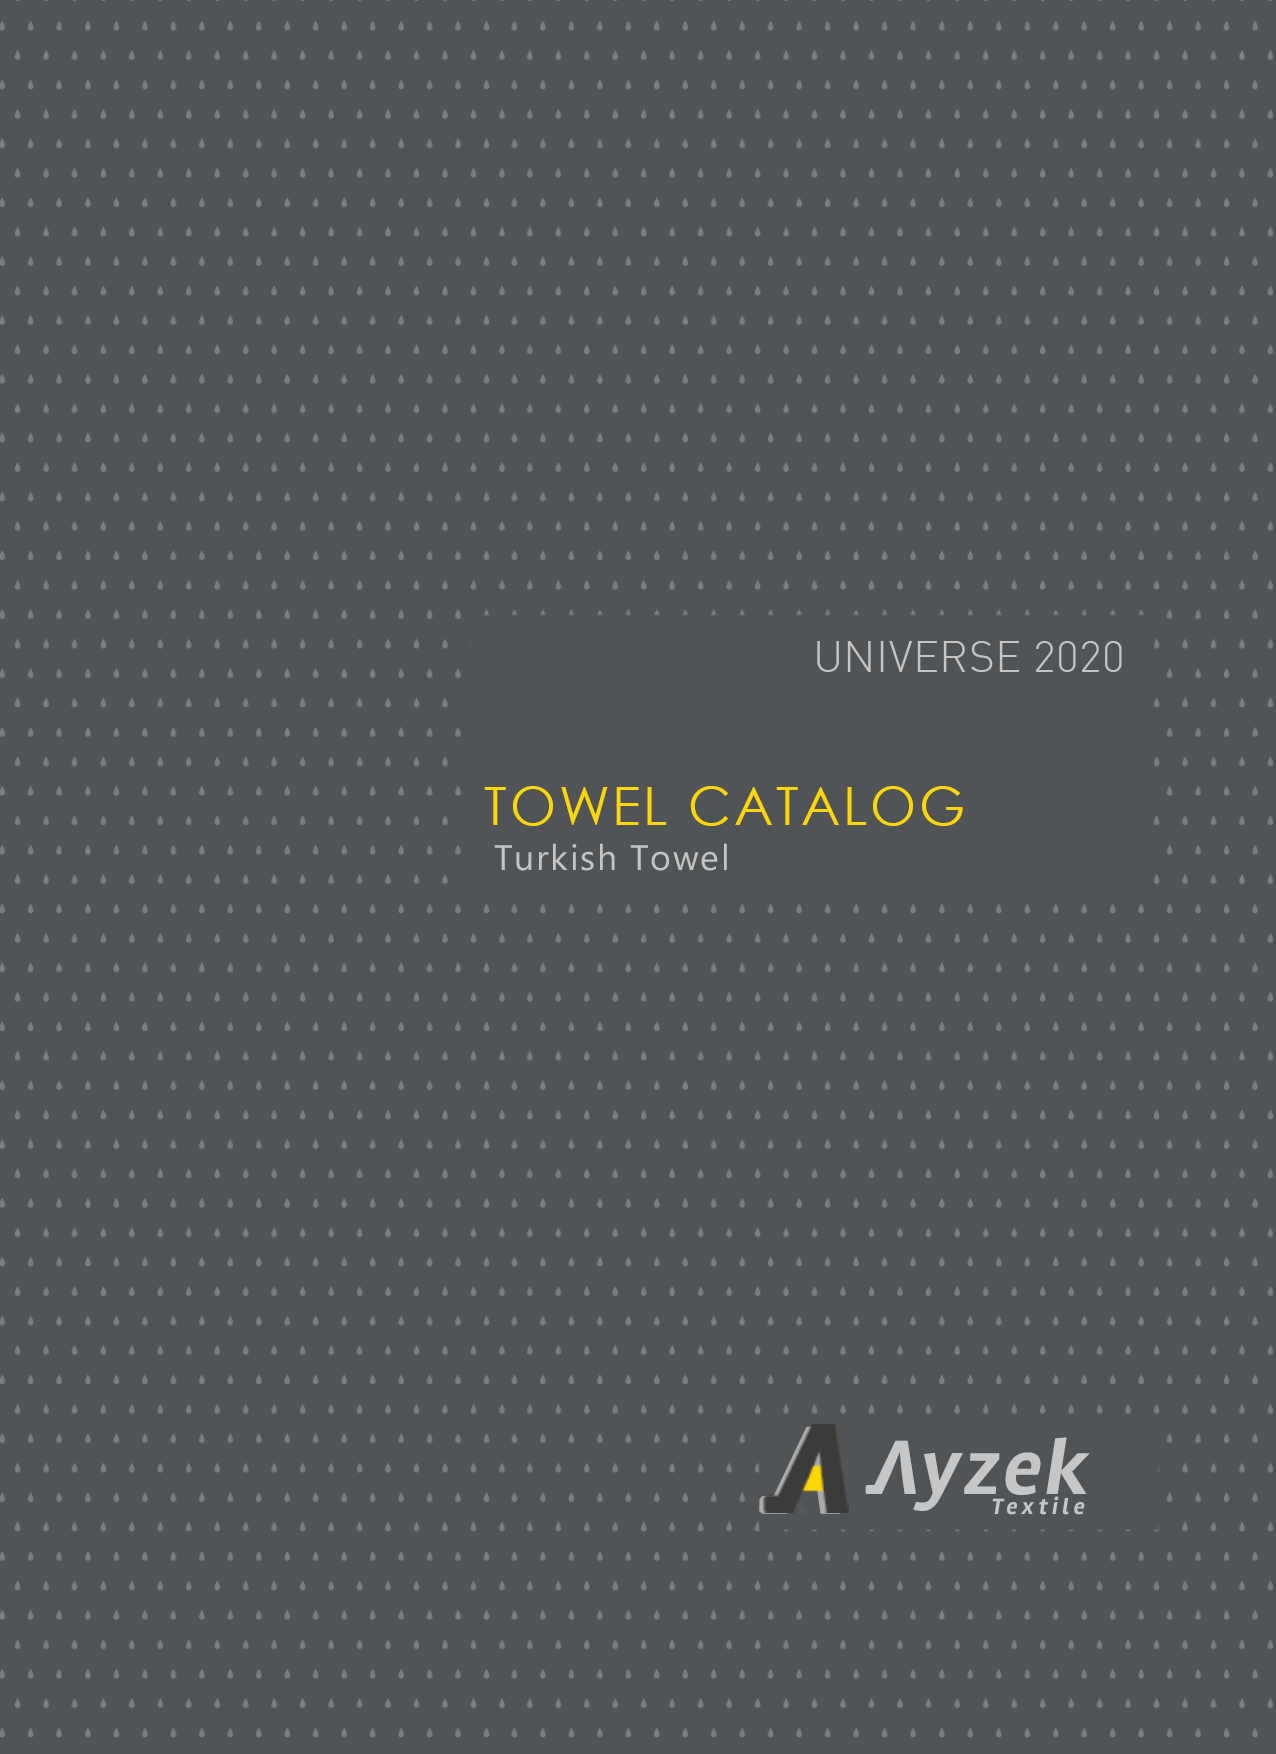 Towel Catalog List